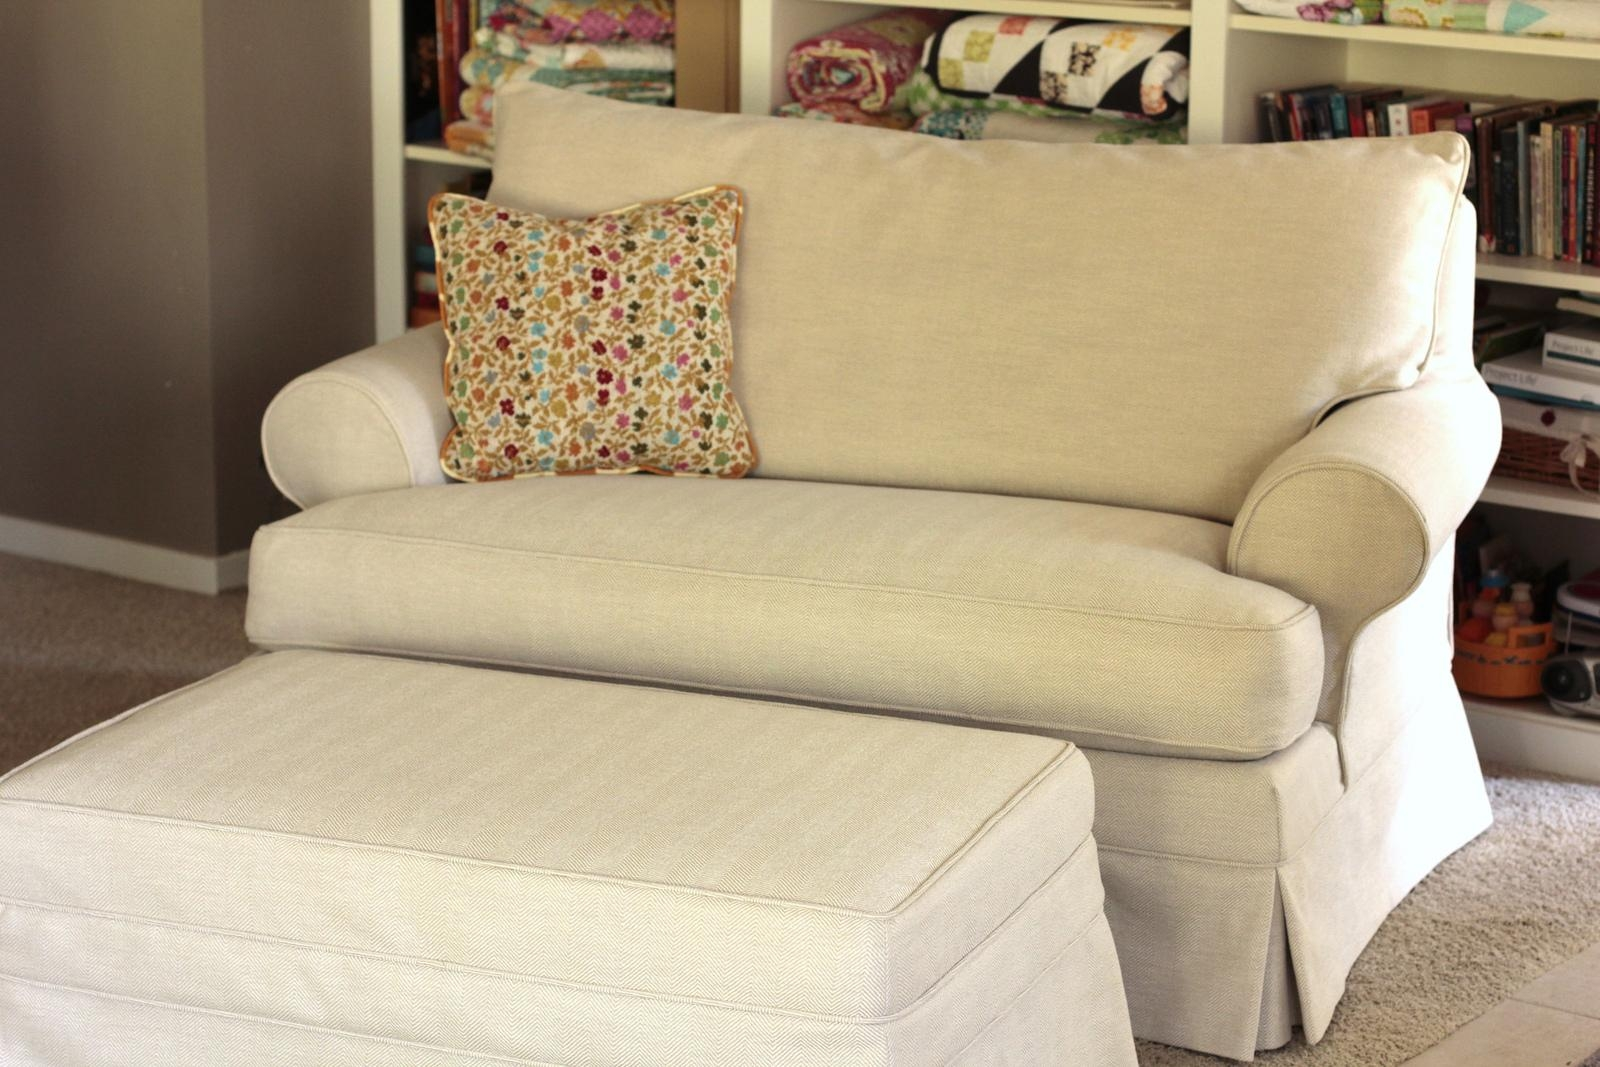 Twin Fibers: Loveseat Slipcover Regarding Slip Covers For Love Seats (Image 20 of 20)